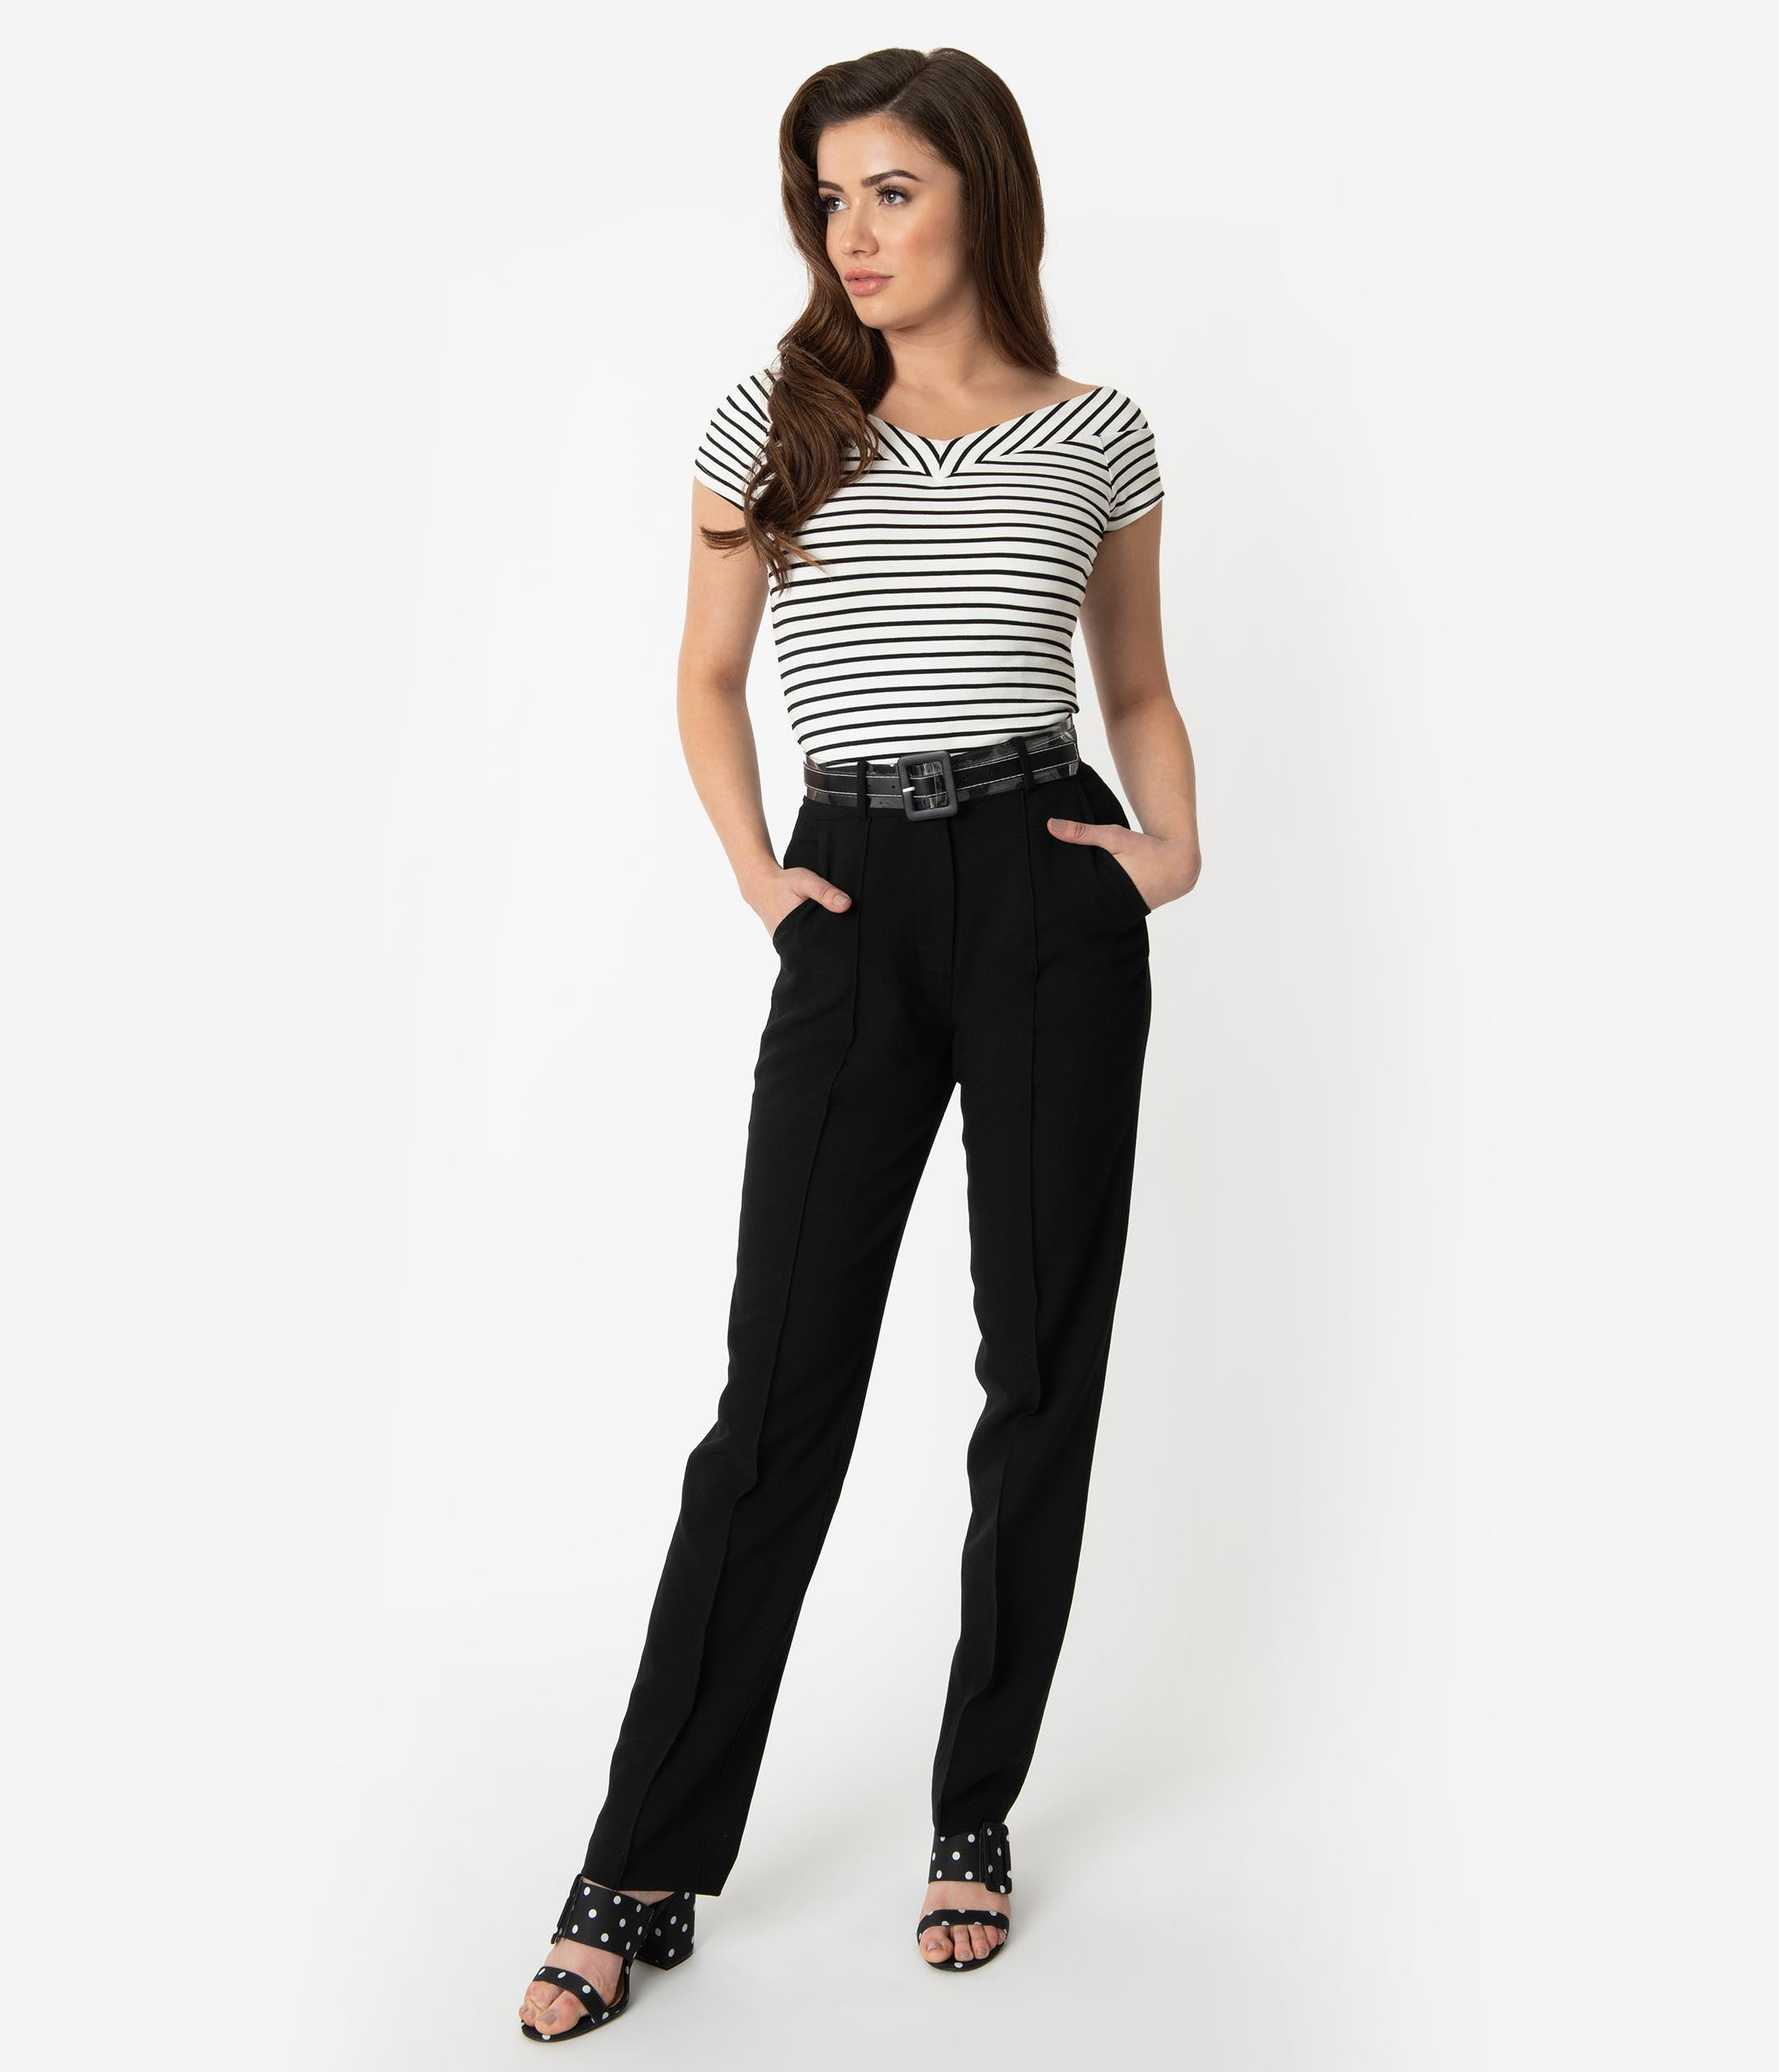 Vintage High Waisted Trousers, Sailor Pants, Jeans Vintage Style Black Woven High Waist Belted Ash Pants $62.00 AT vintagedancer.com